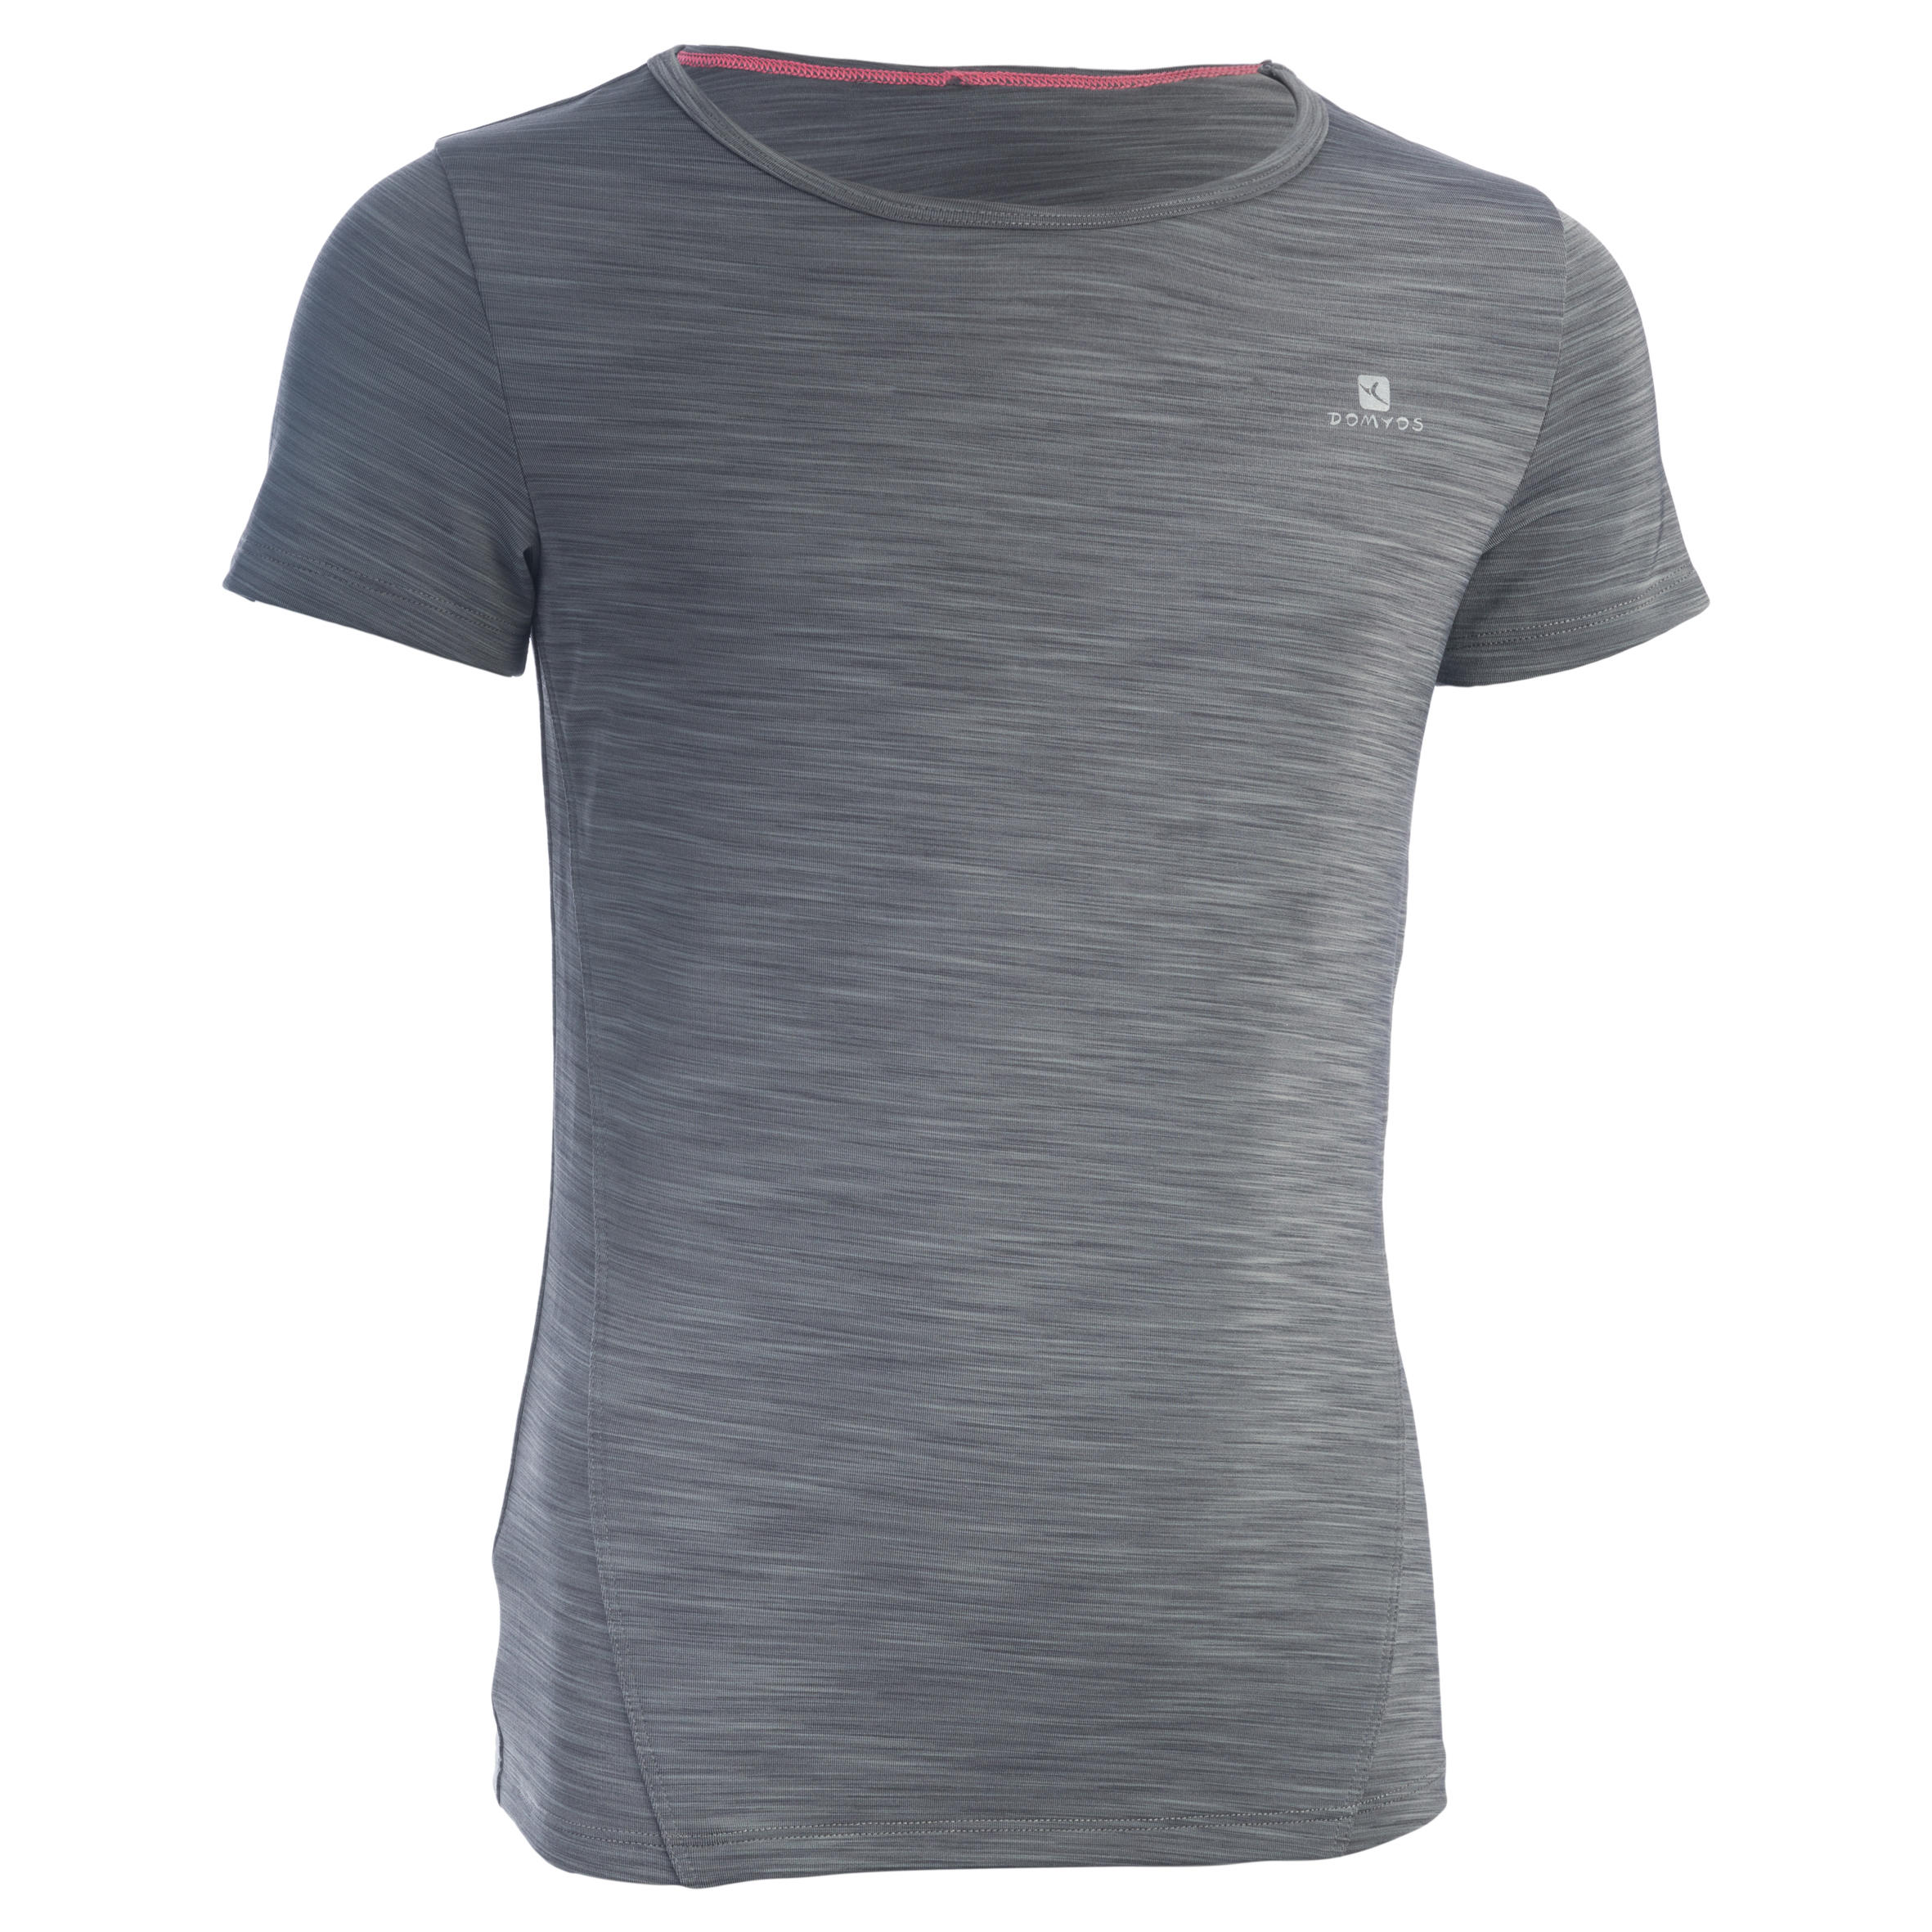 Tee-shirt 560 manches courtes gym fille gris